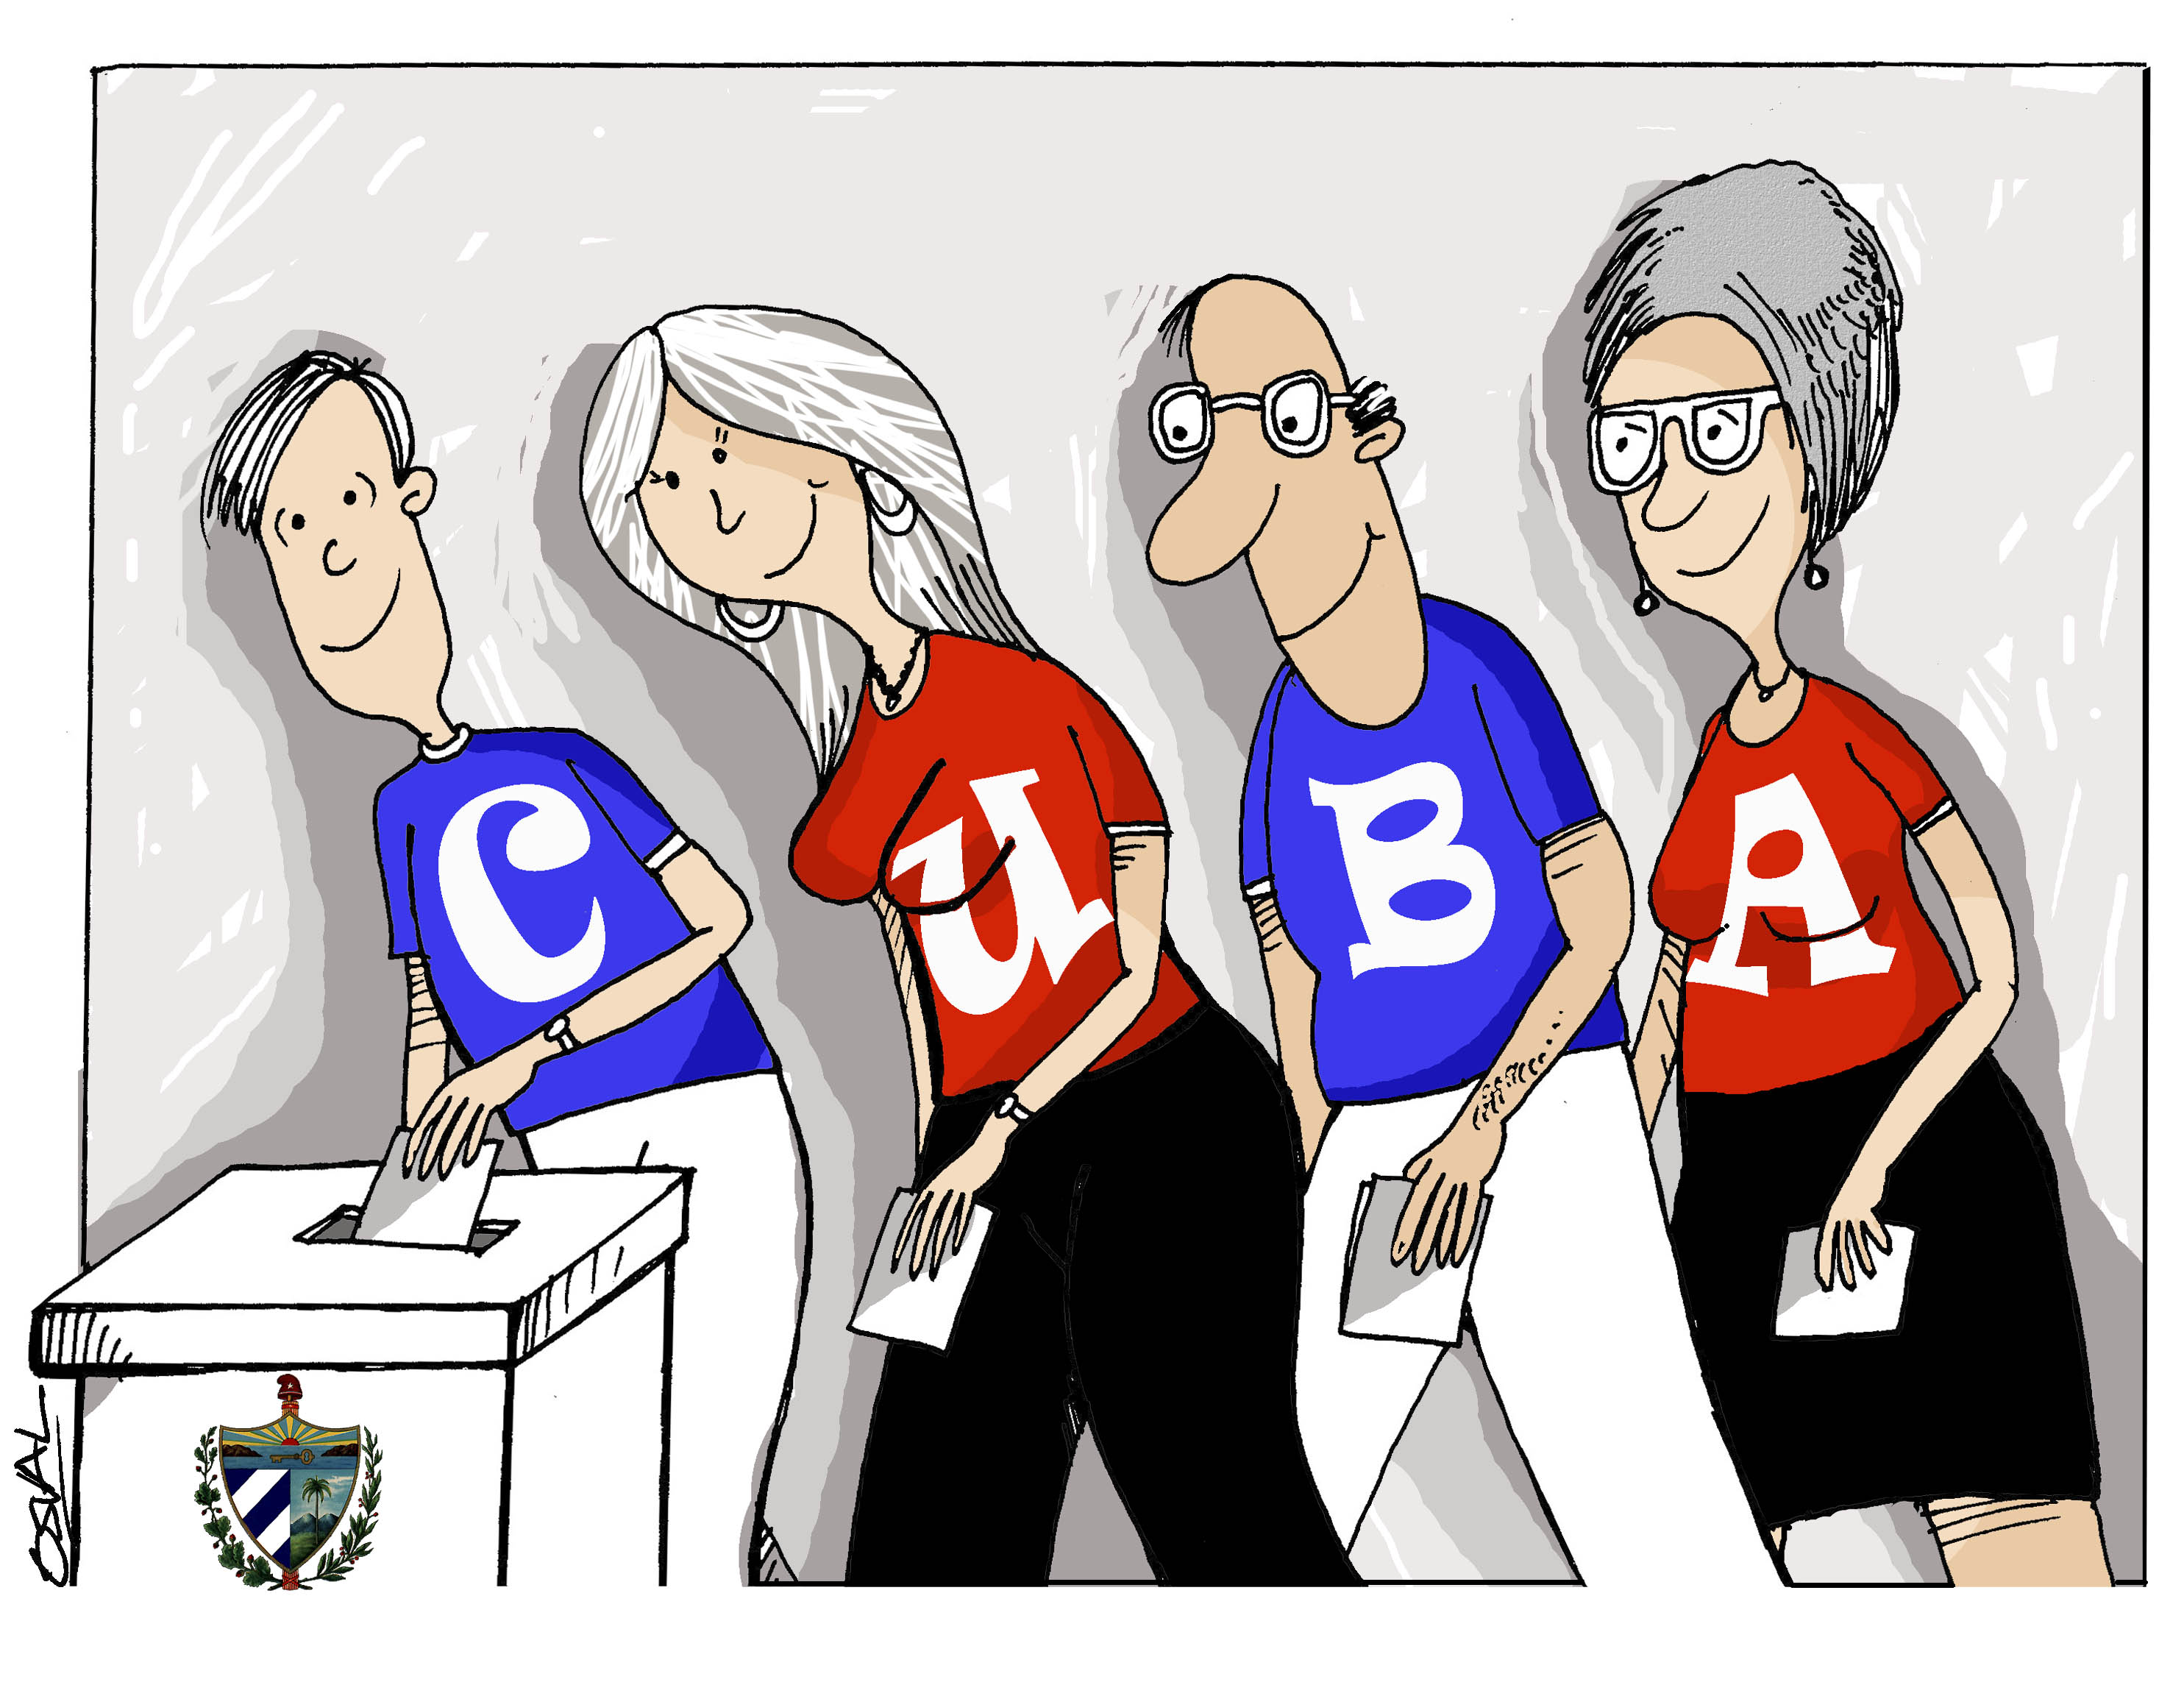 escambray today, elections, elections in cuba, general elections in cuba, municipal assembly of the people's power